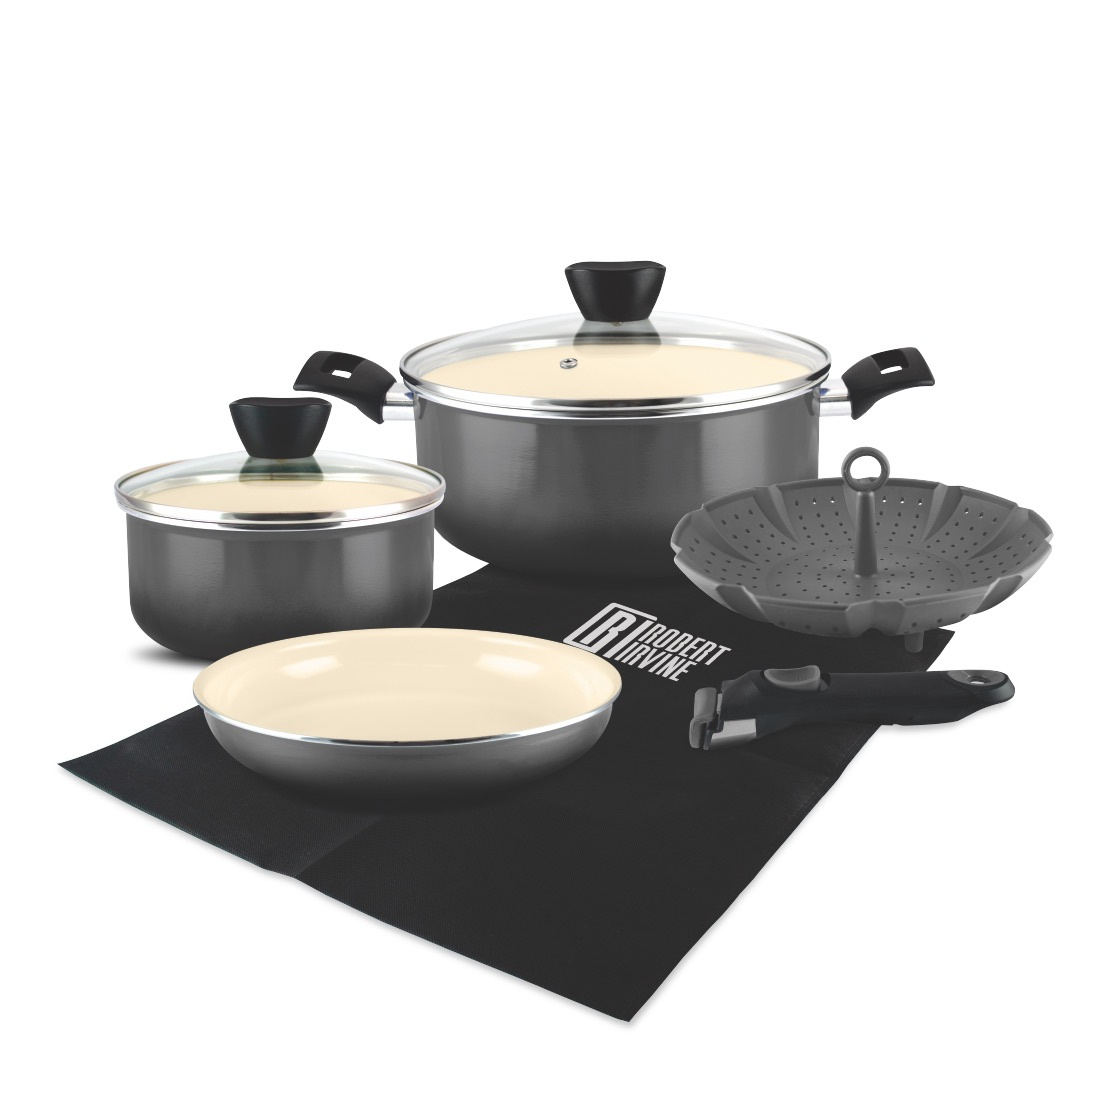 Robert Irvine 8-Piece Cookware